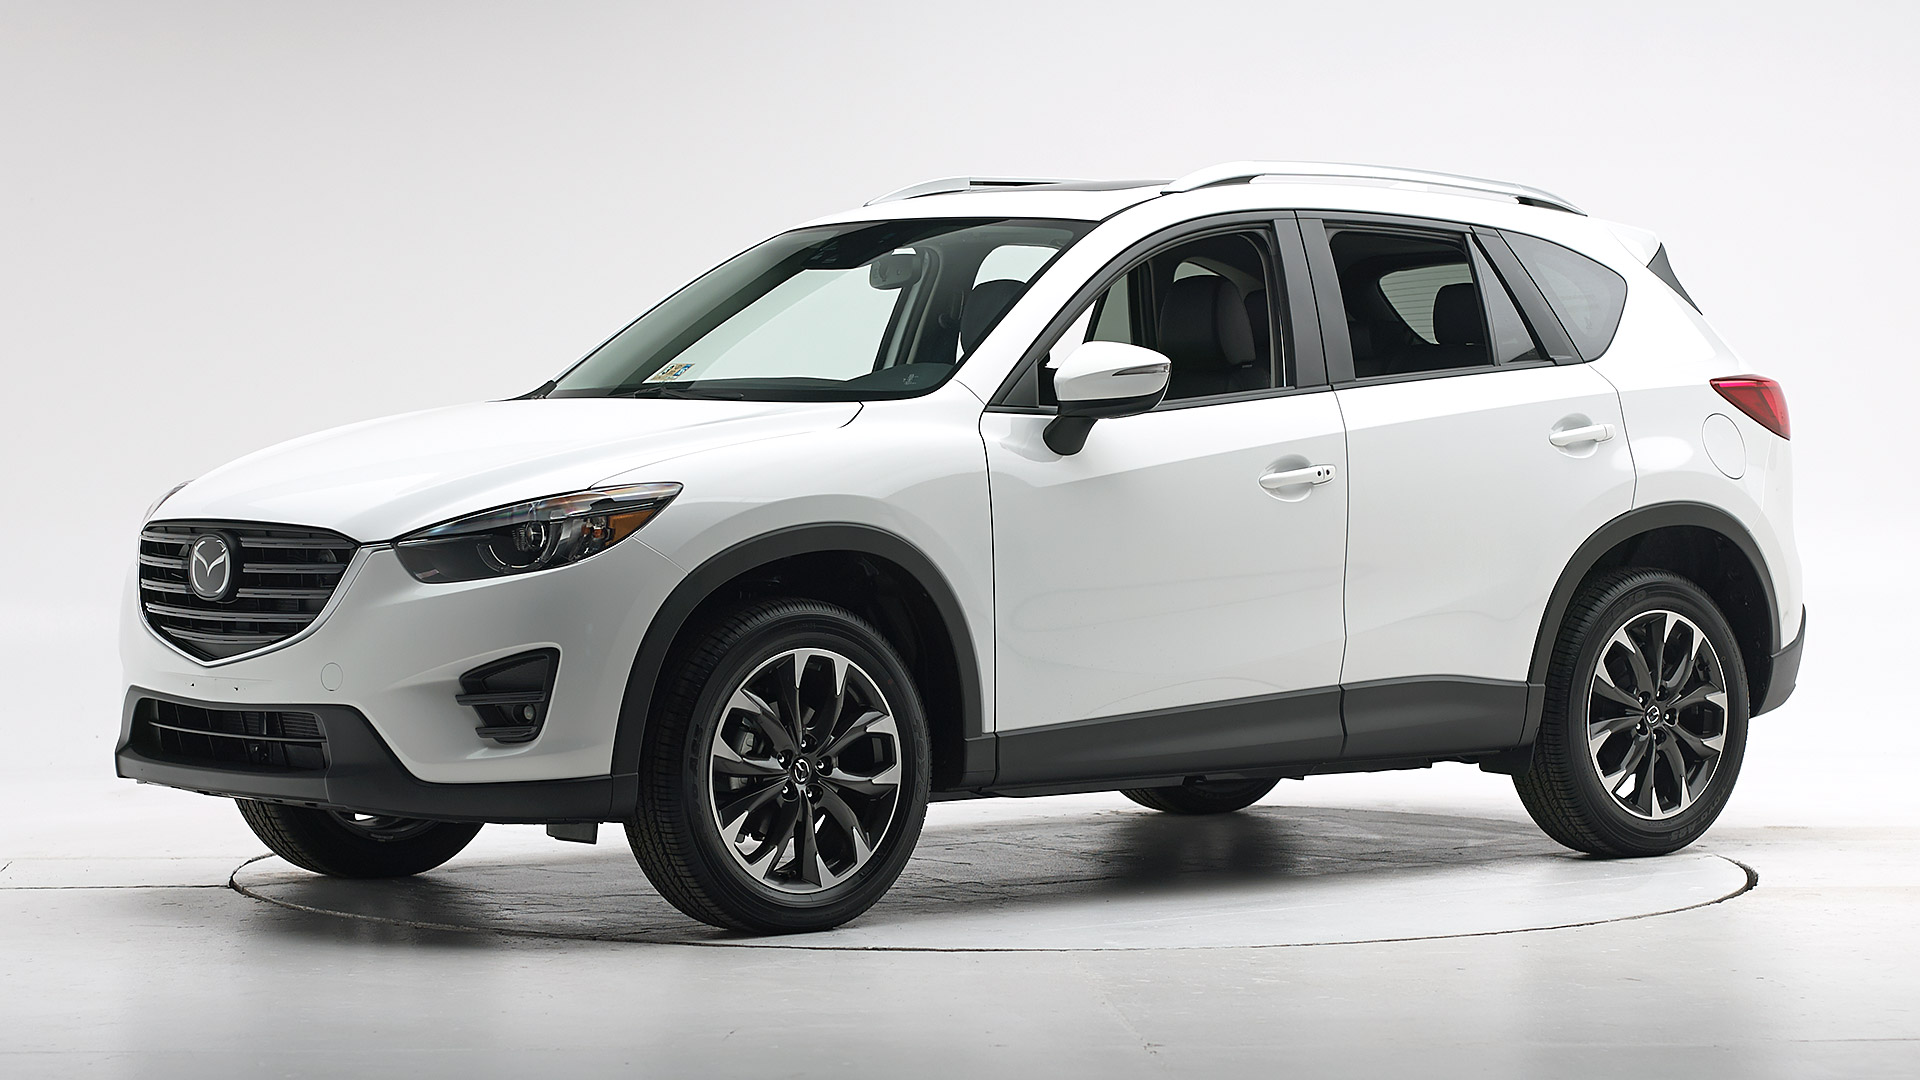 2016 Mazda CX-5 4-door SUV